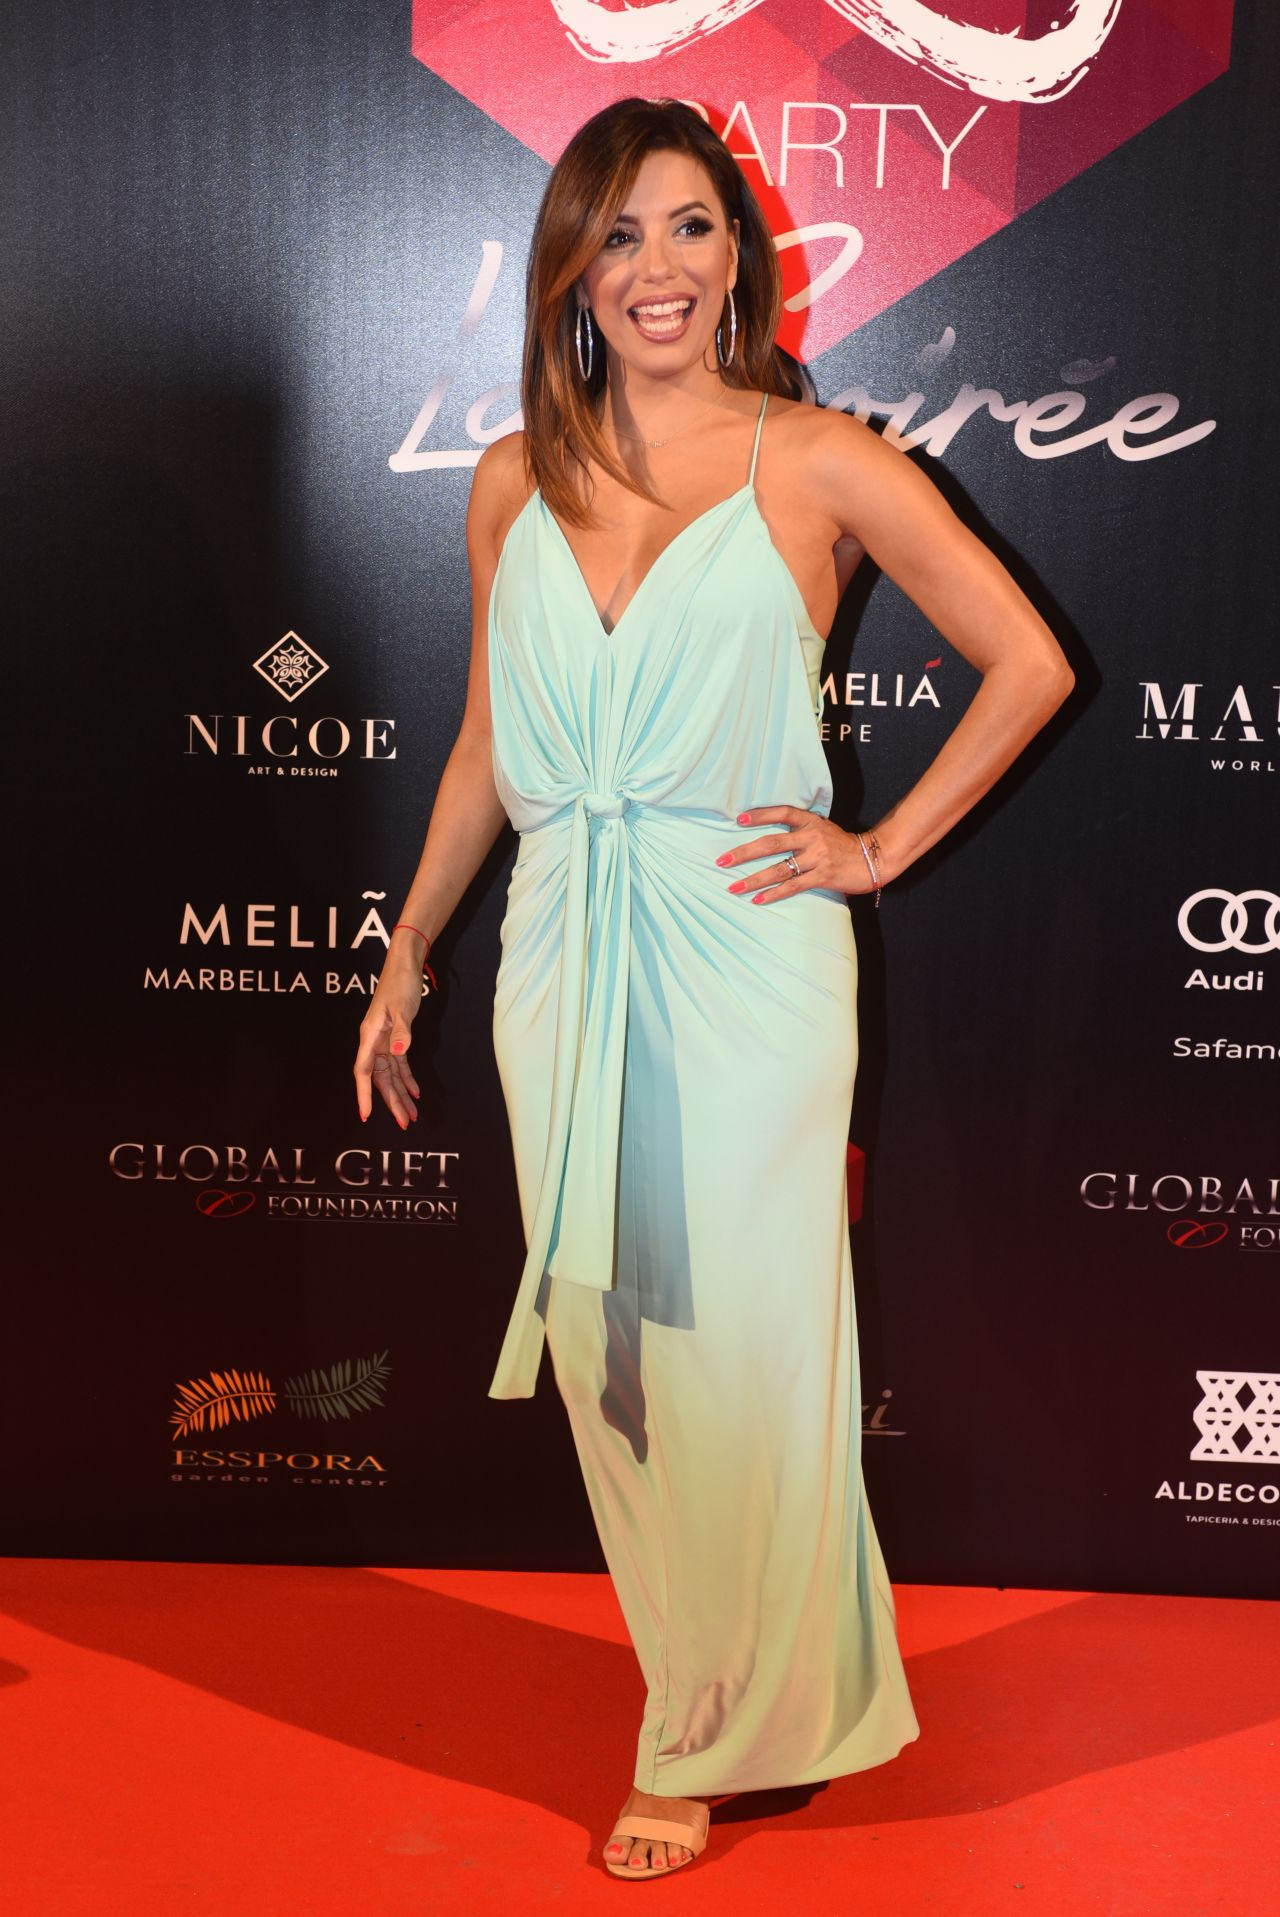 Eva Longoria - Global Gift Gala Pre-Party in Marbella ... Eva Longoria